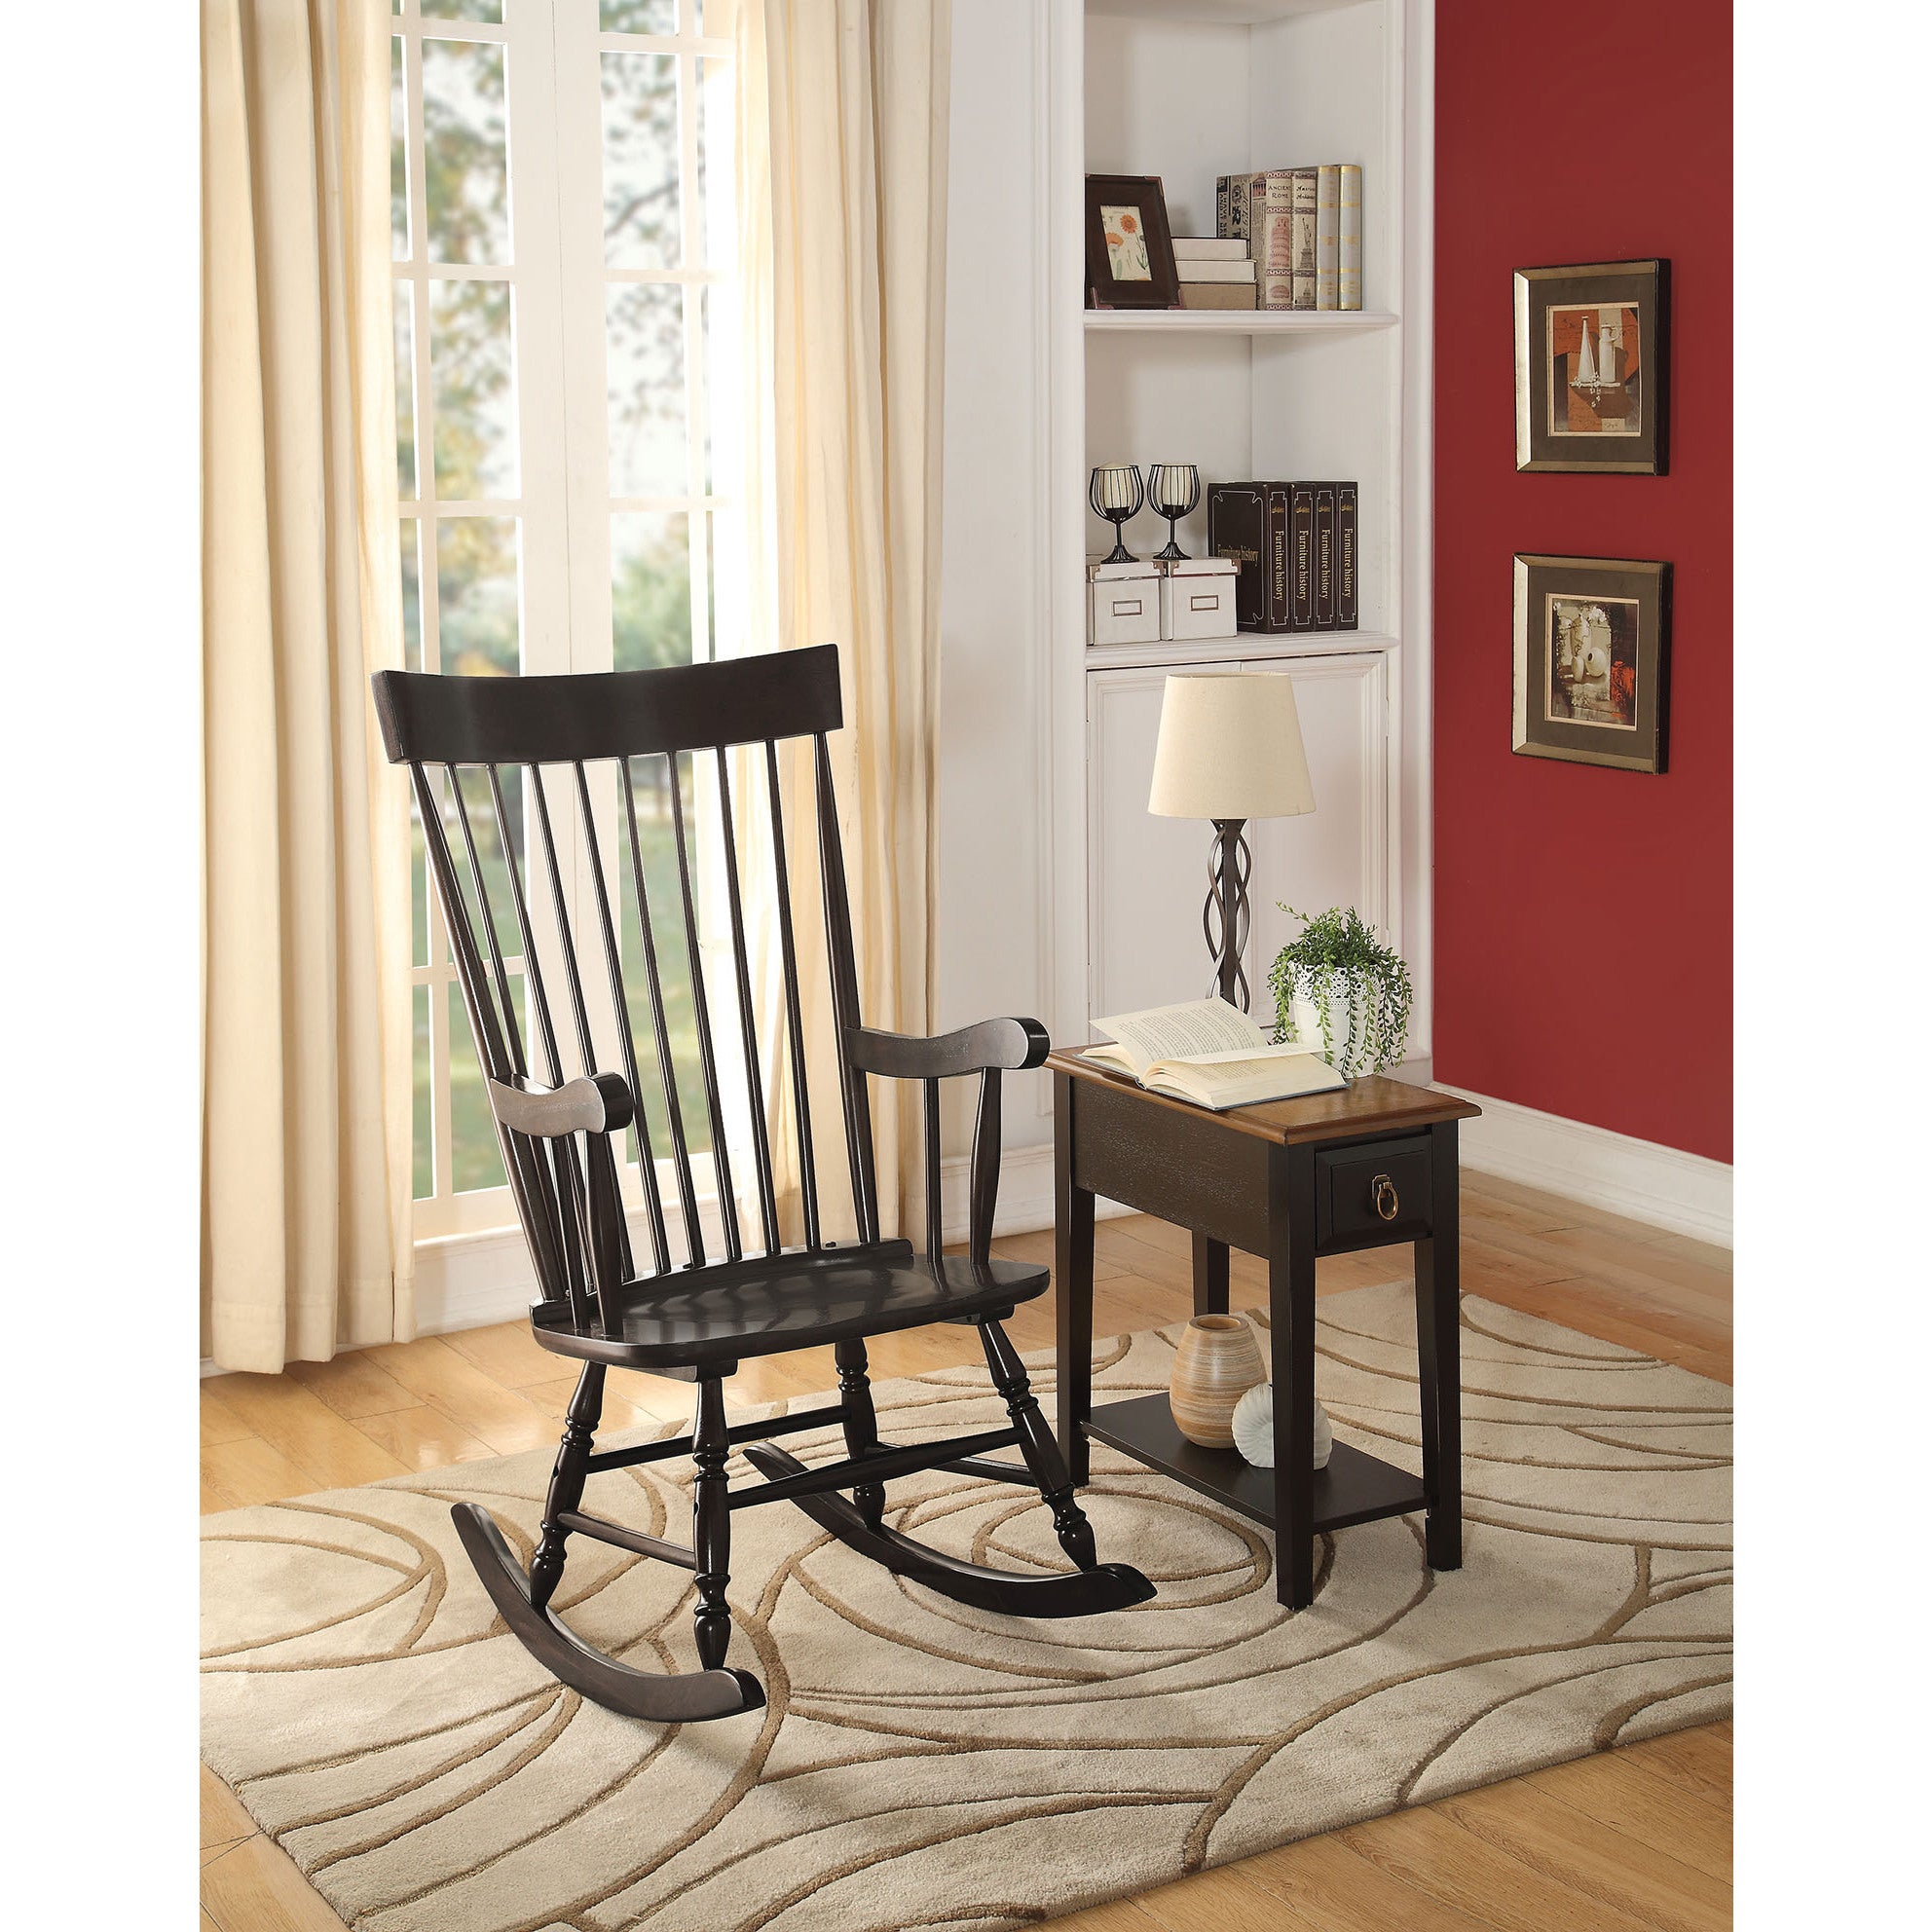 Buy Rocking Chairs, Traditional Living Room Chairs Online At Pertaining To Radford Traditional Rocking Chairs (View 9 of 20)